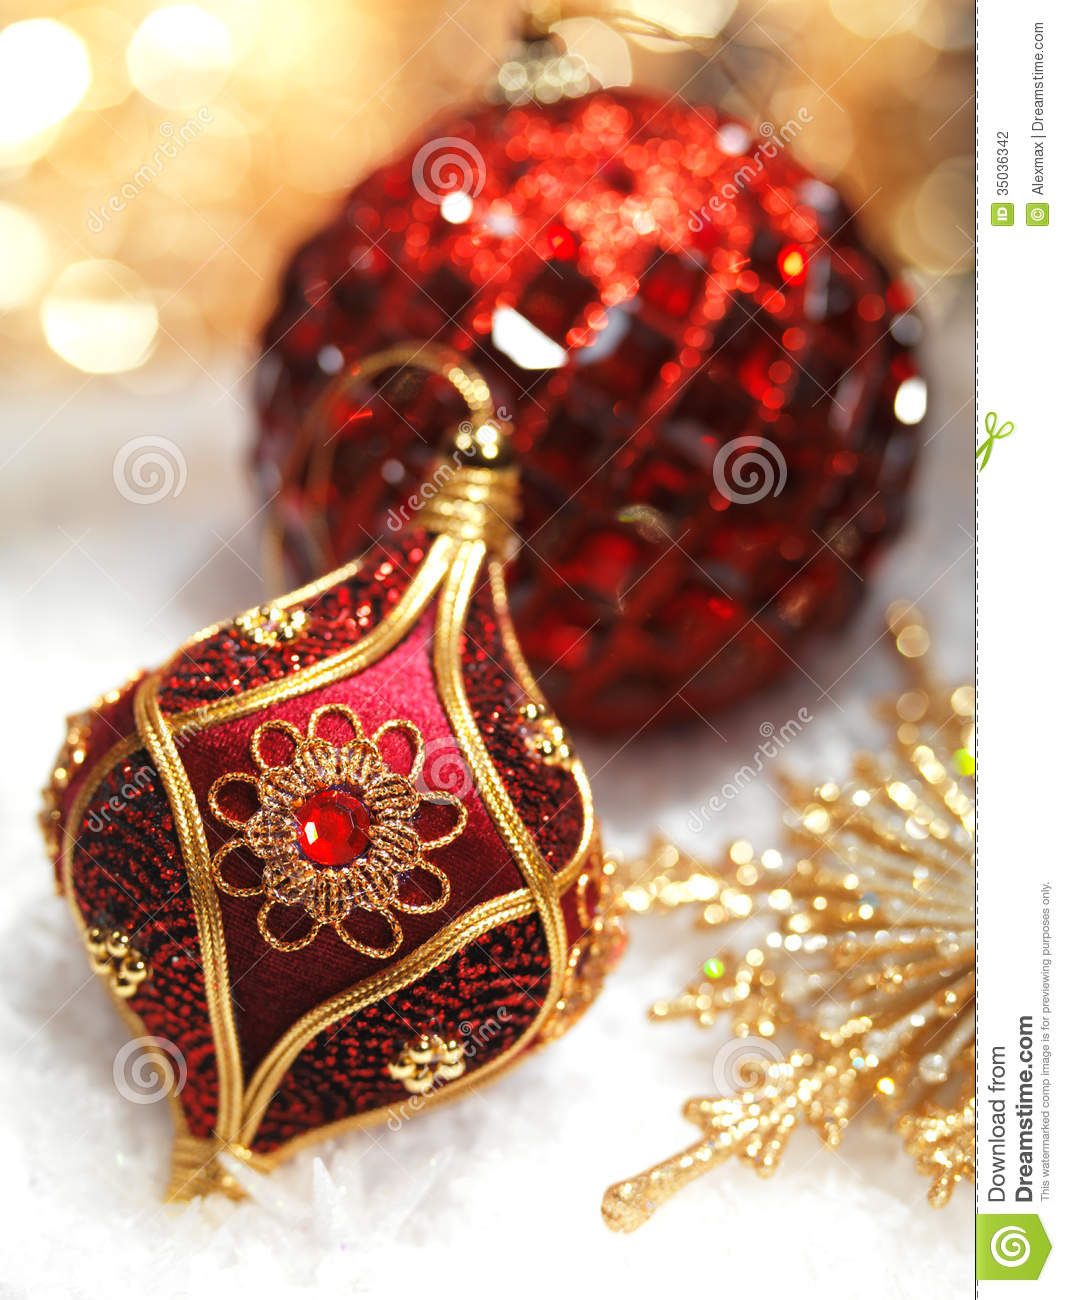 Red and gold christmas tree decorating ideas - Christmas Decoration Gold Life Ornaments Red